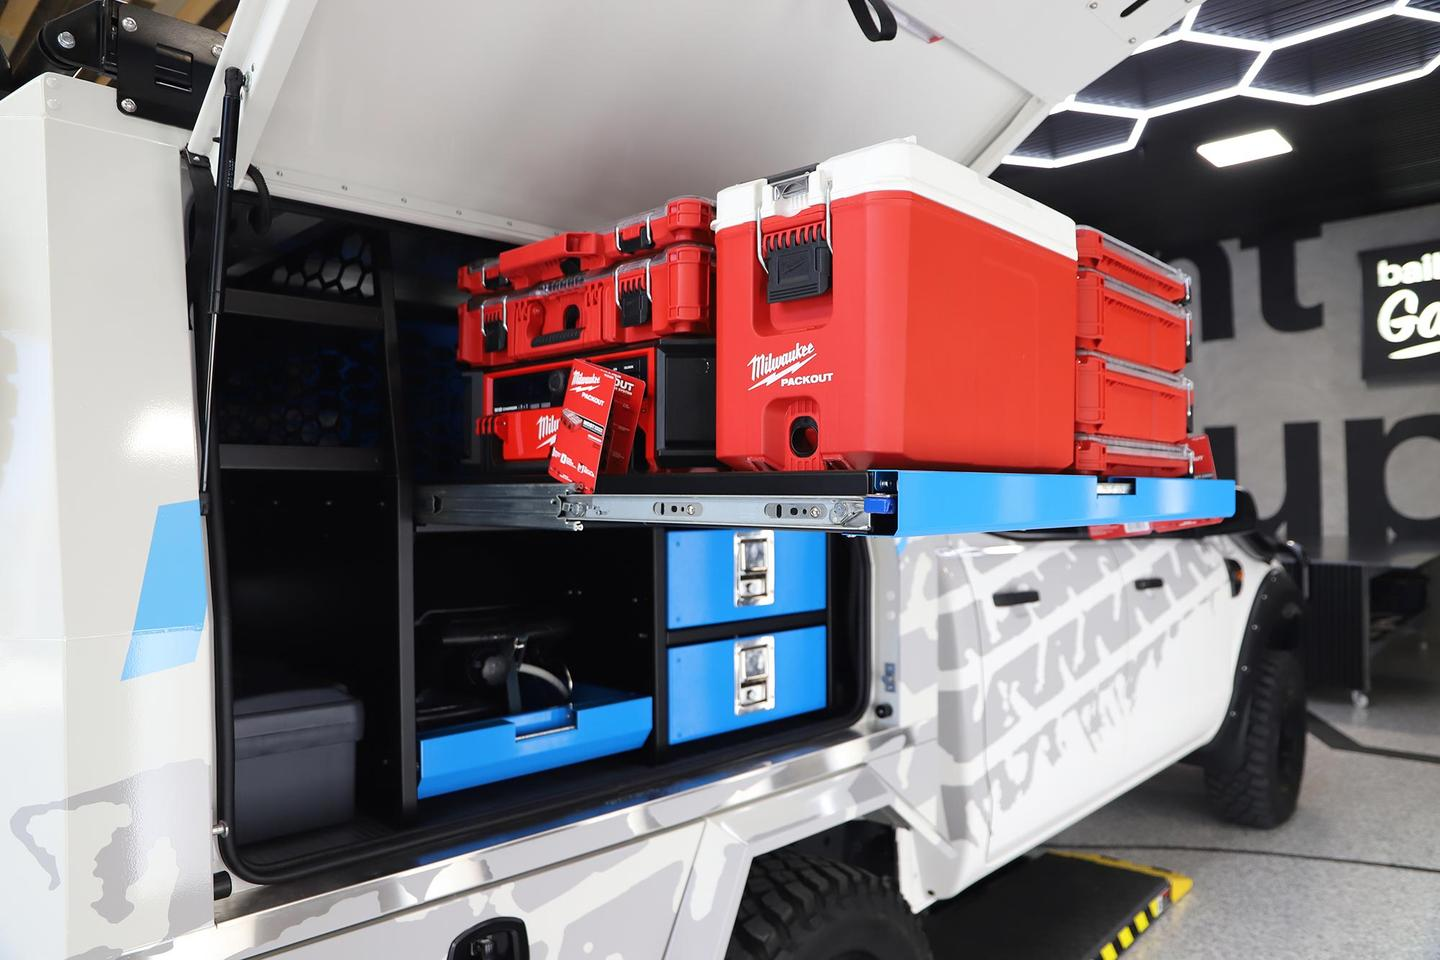 One of many modular toolbox systems on the market today, Milwaukee's Packout series includes various sizes of interlocking toolboxes, bins and hardware cases, along with compatible equipment and accessories like a cooler and wet/dry vac